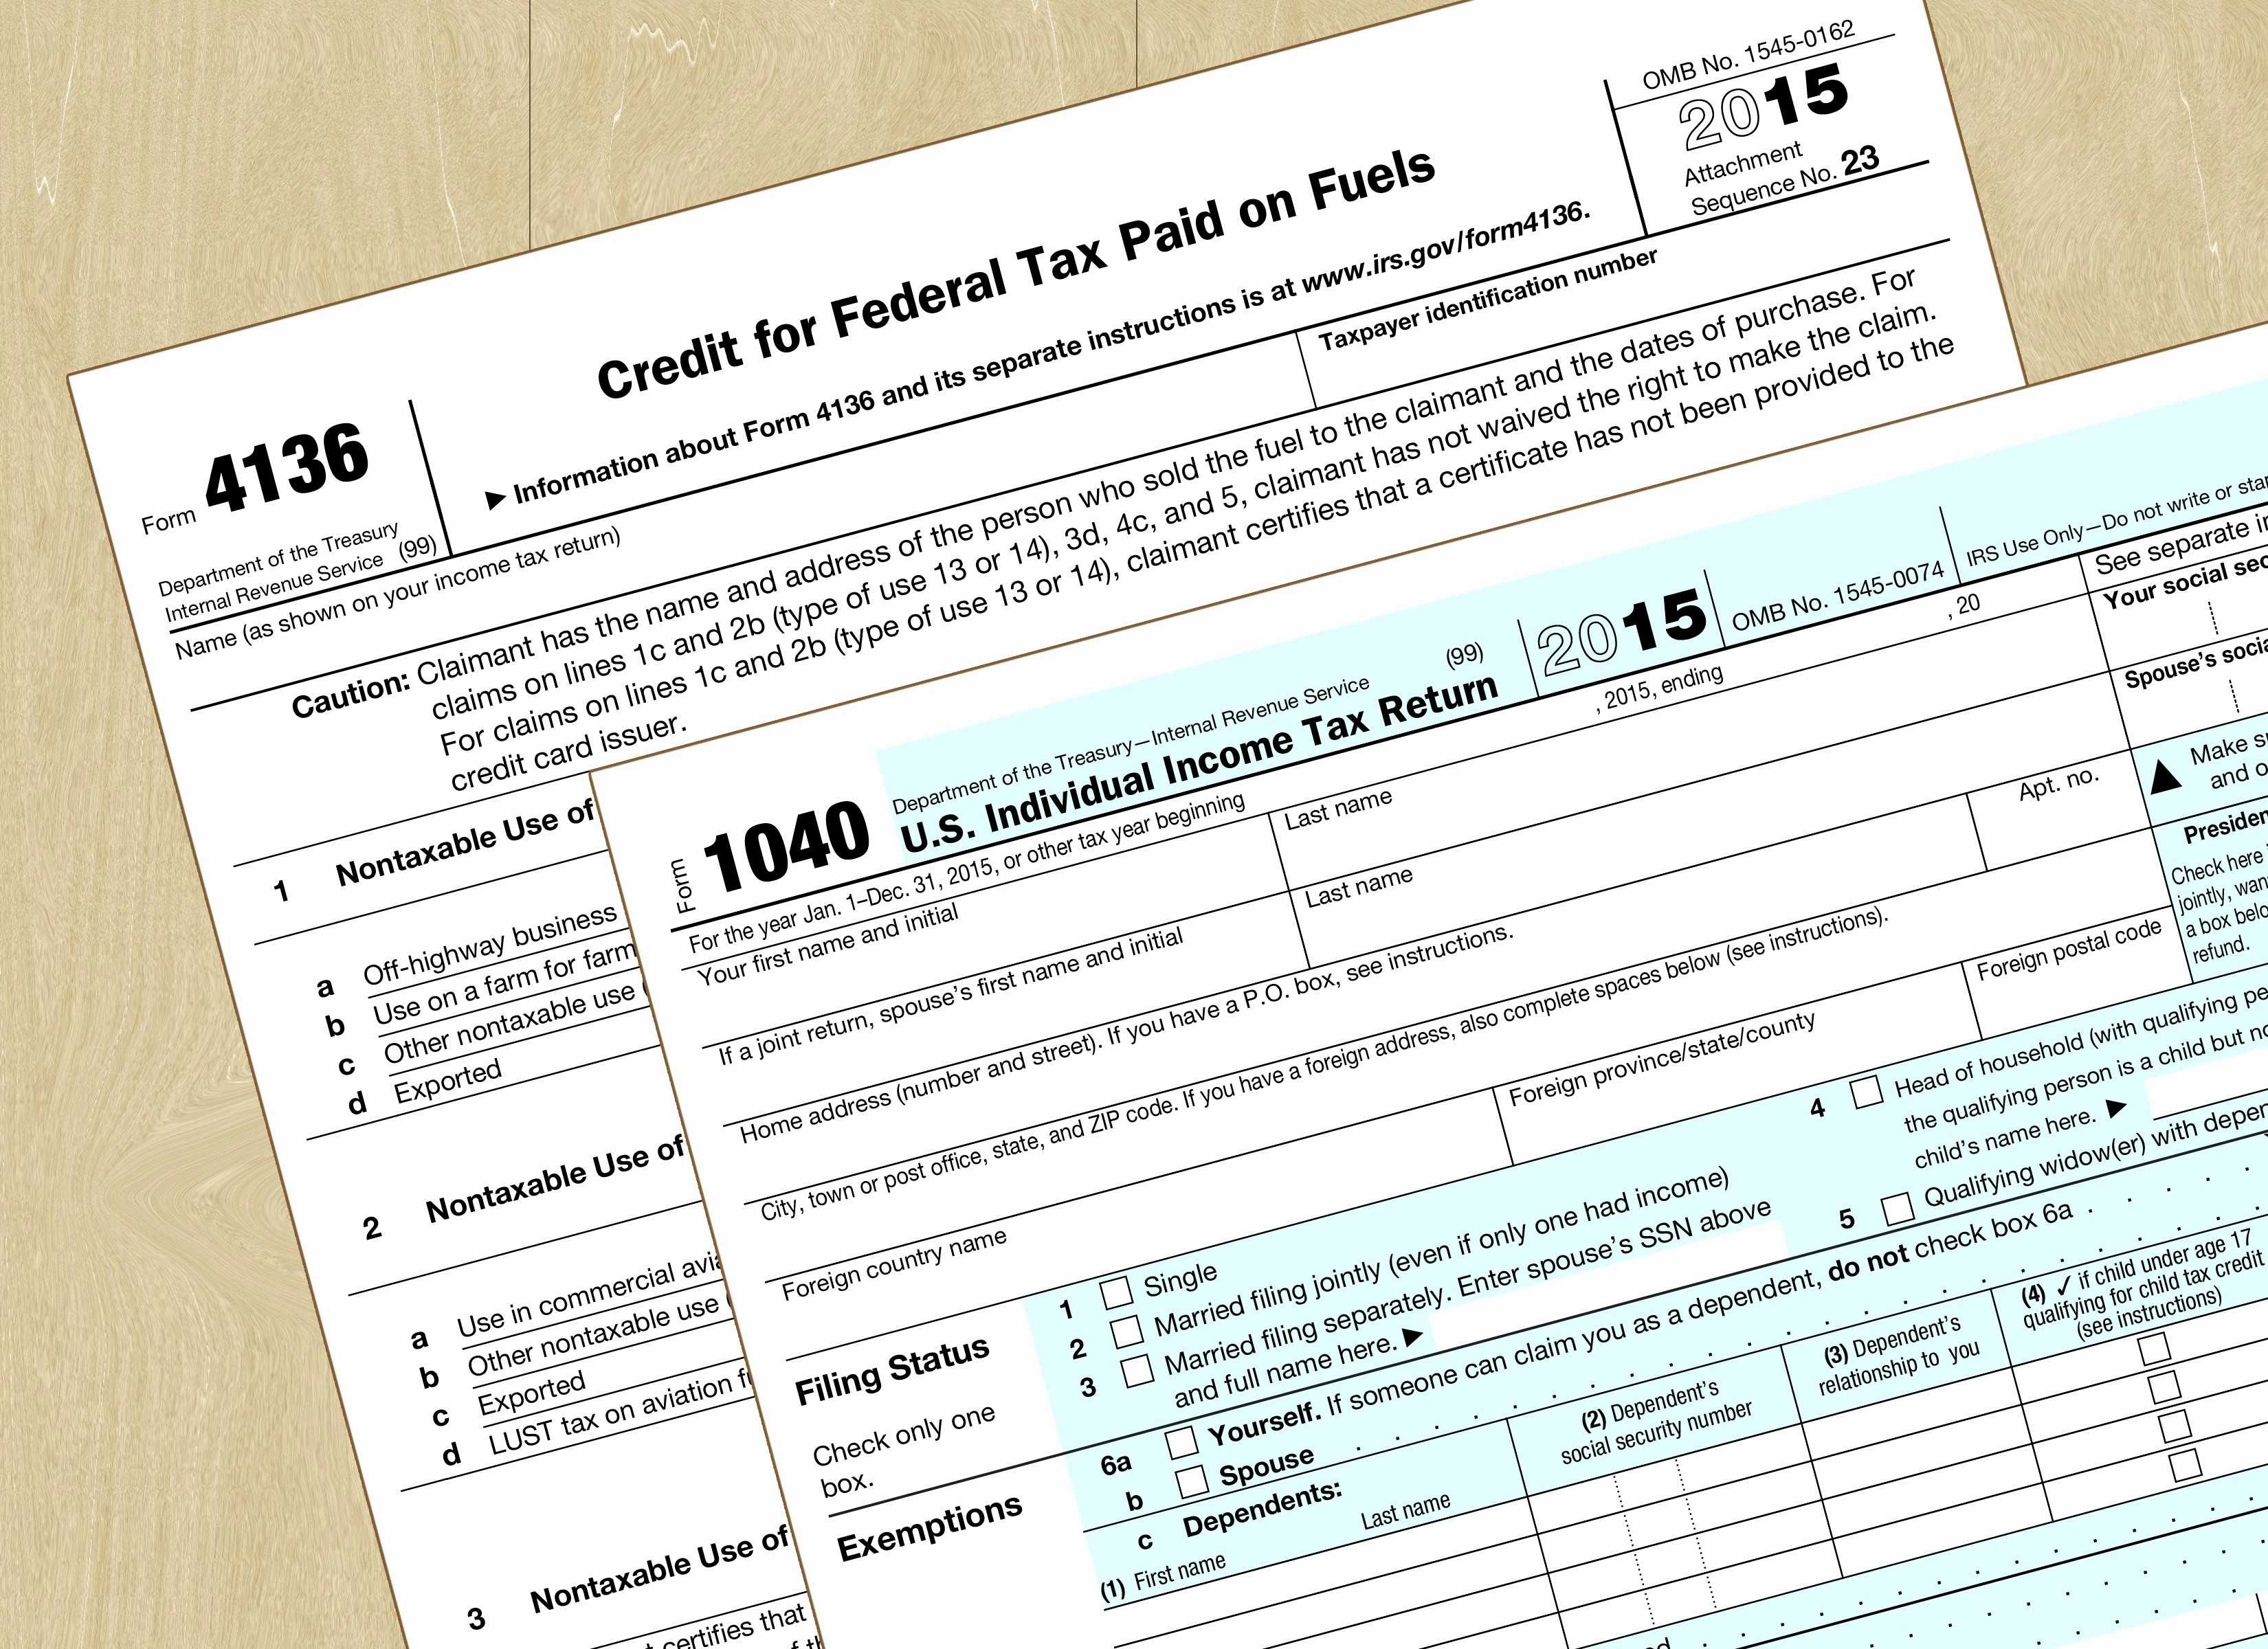 Form 9465 Online Payment Agreement Best Of Irs Installment Agreement Payment Lovely Irs Installment Agreement